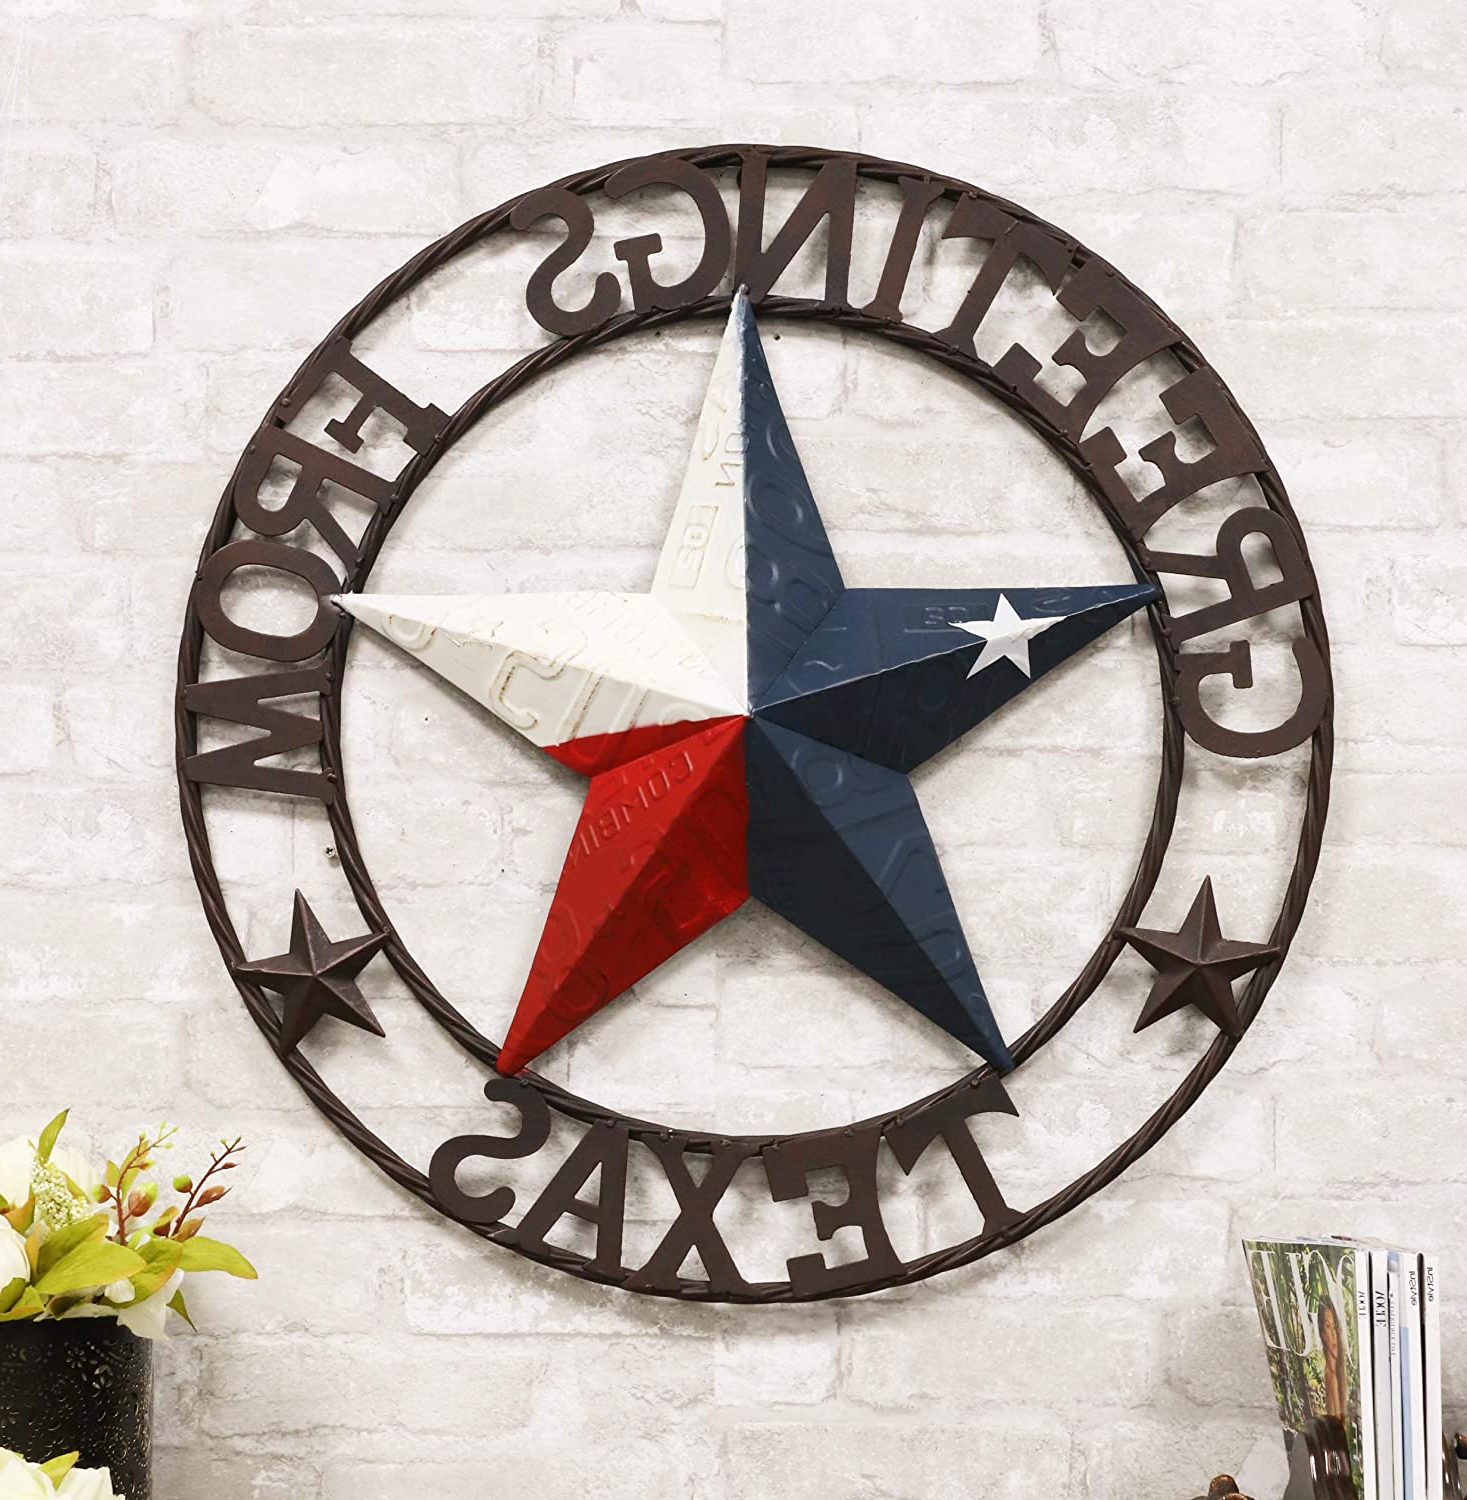 """Coastal Flag Sign With Rope Wall Décor Regarding Most Recently Released Ebros Gift Oversized 24"""" Wide Vintage Rustic Western Greetings From Texas Lone Star With Braided Rope Border Design Metal Circle Wall Hanging Decor 3d (View 8 of 20)"""